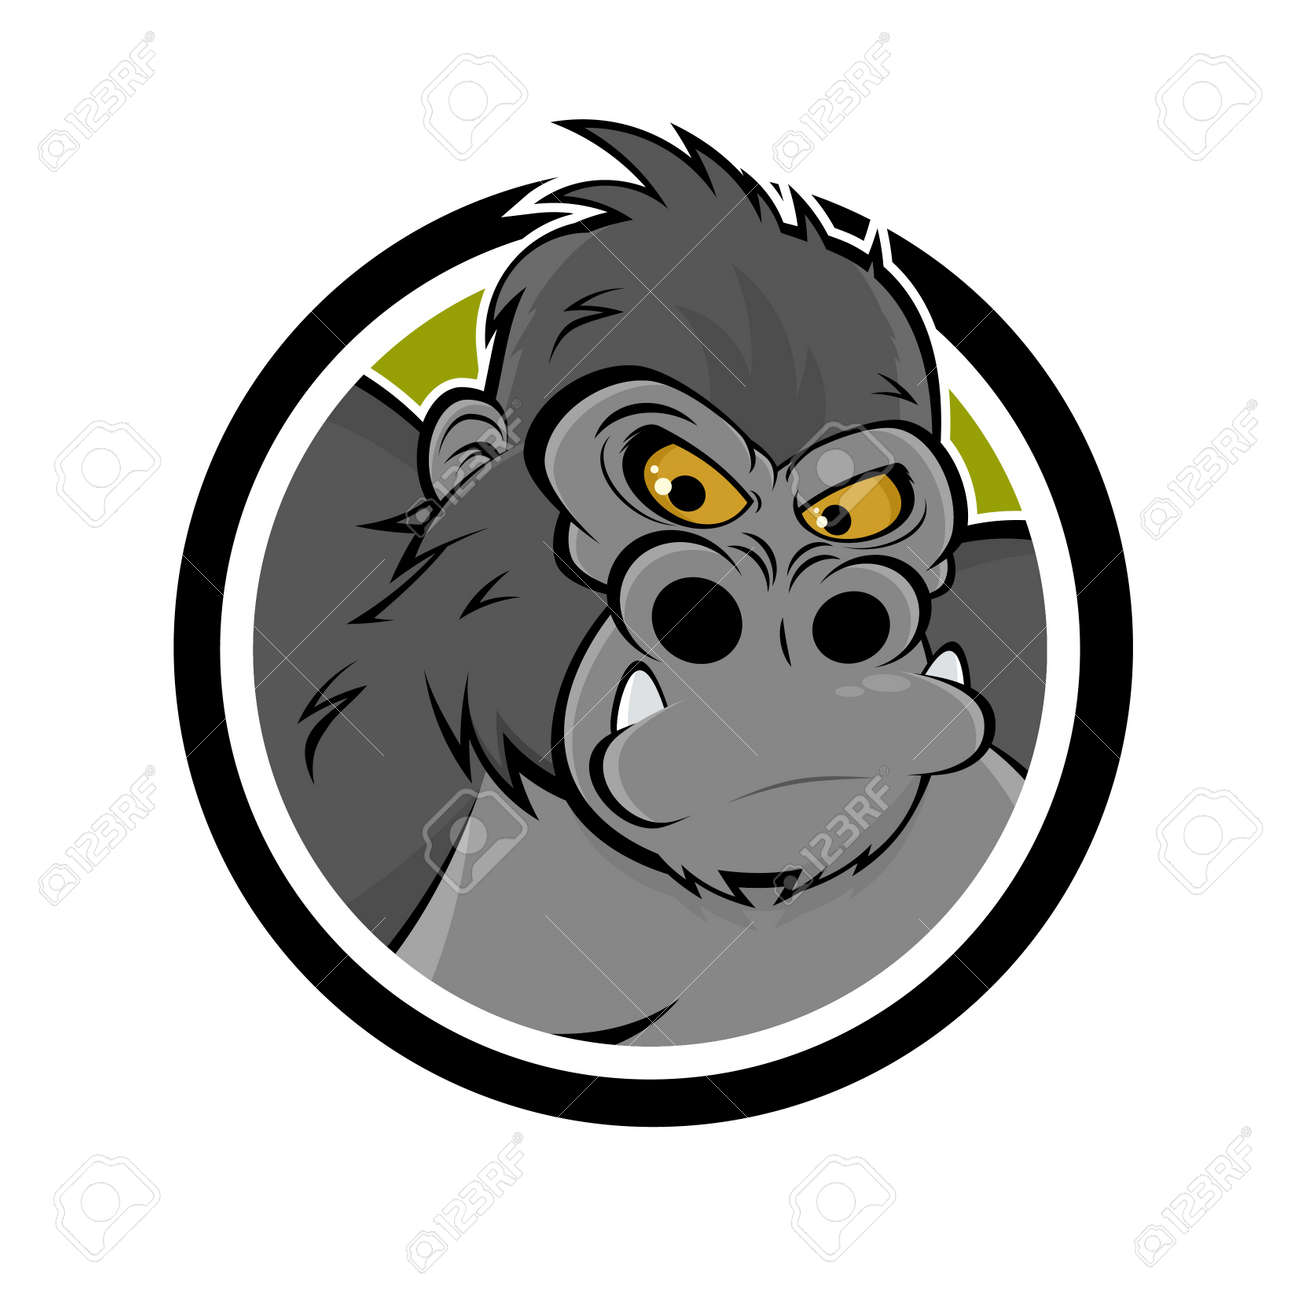 Gorilla Face Cartoon Big Gorilla Angry Cartoon